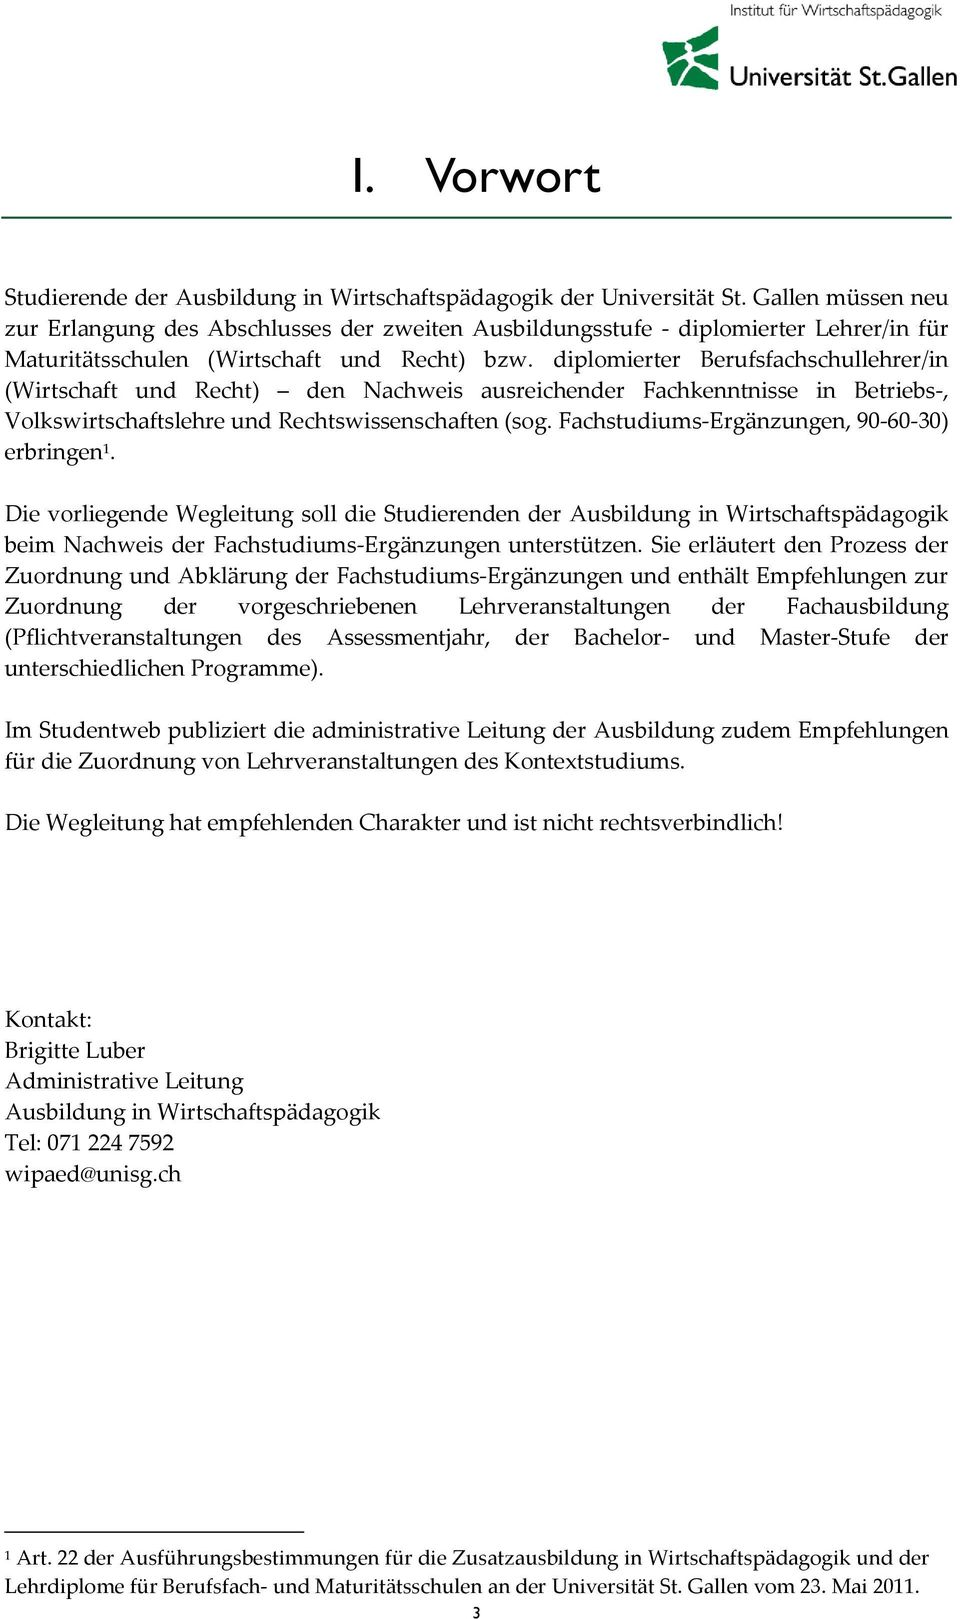 Charmant Format Des Lehrers Wird Fortgesetzt Ideen - Entry Level ...